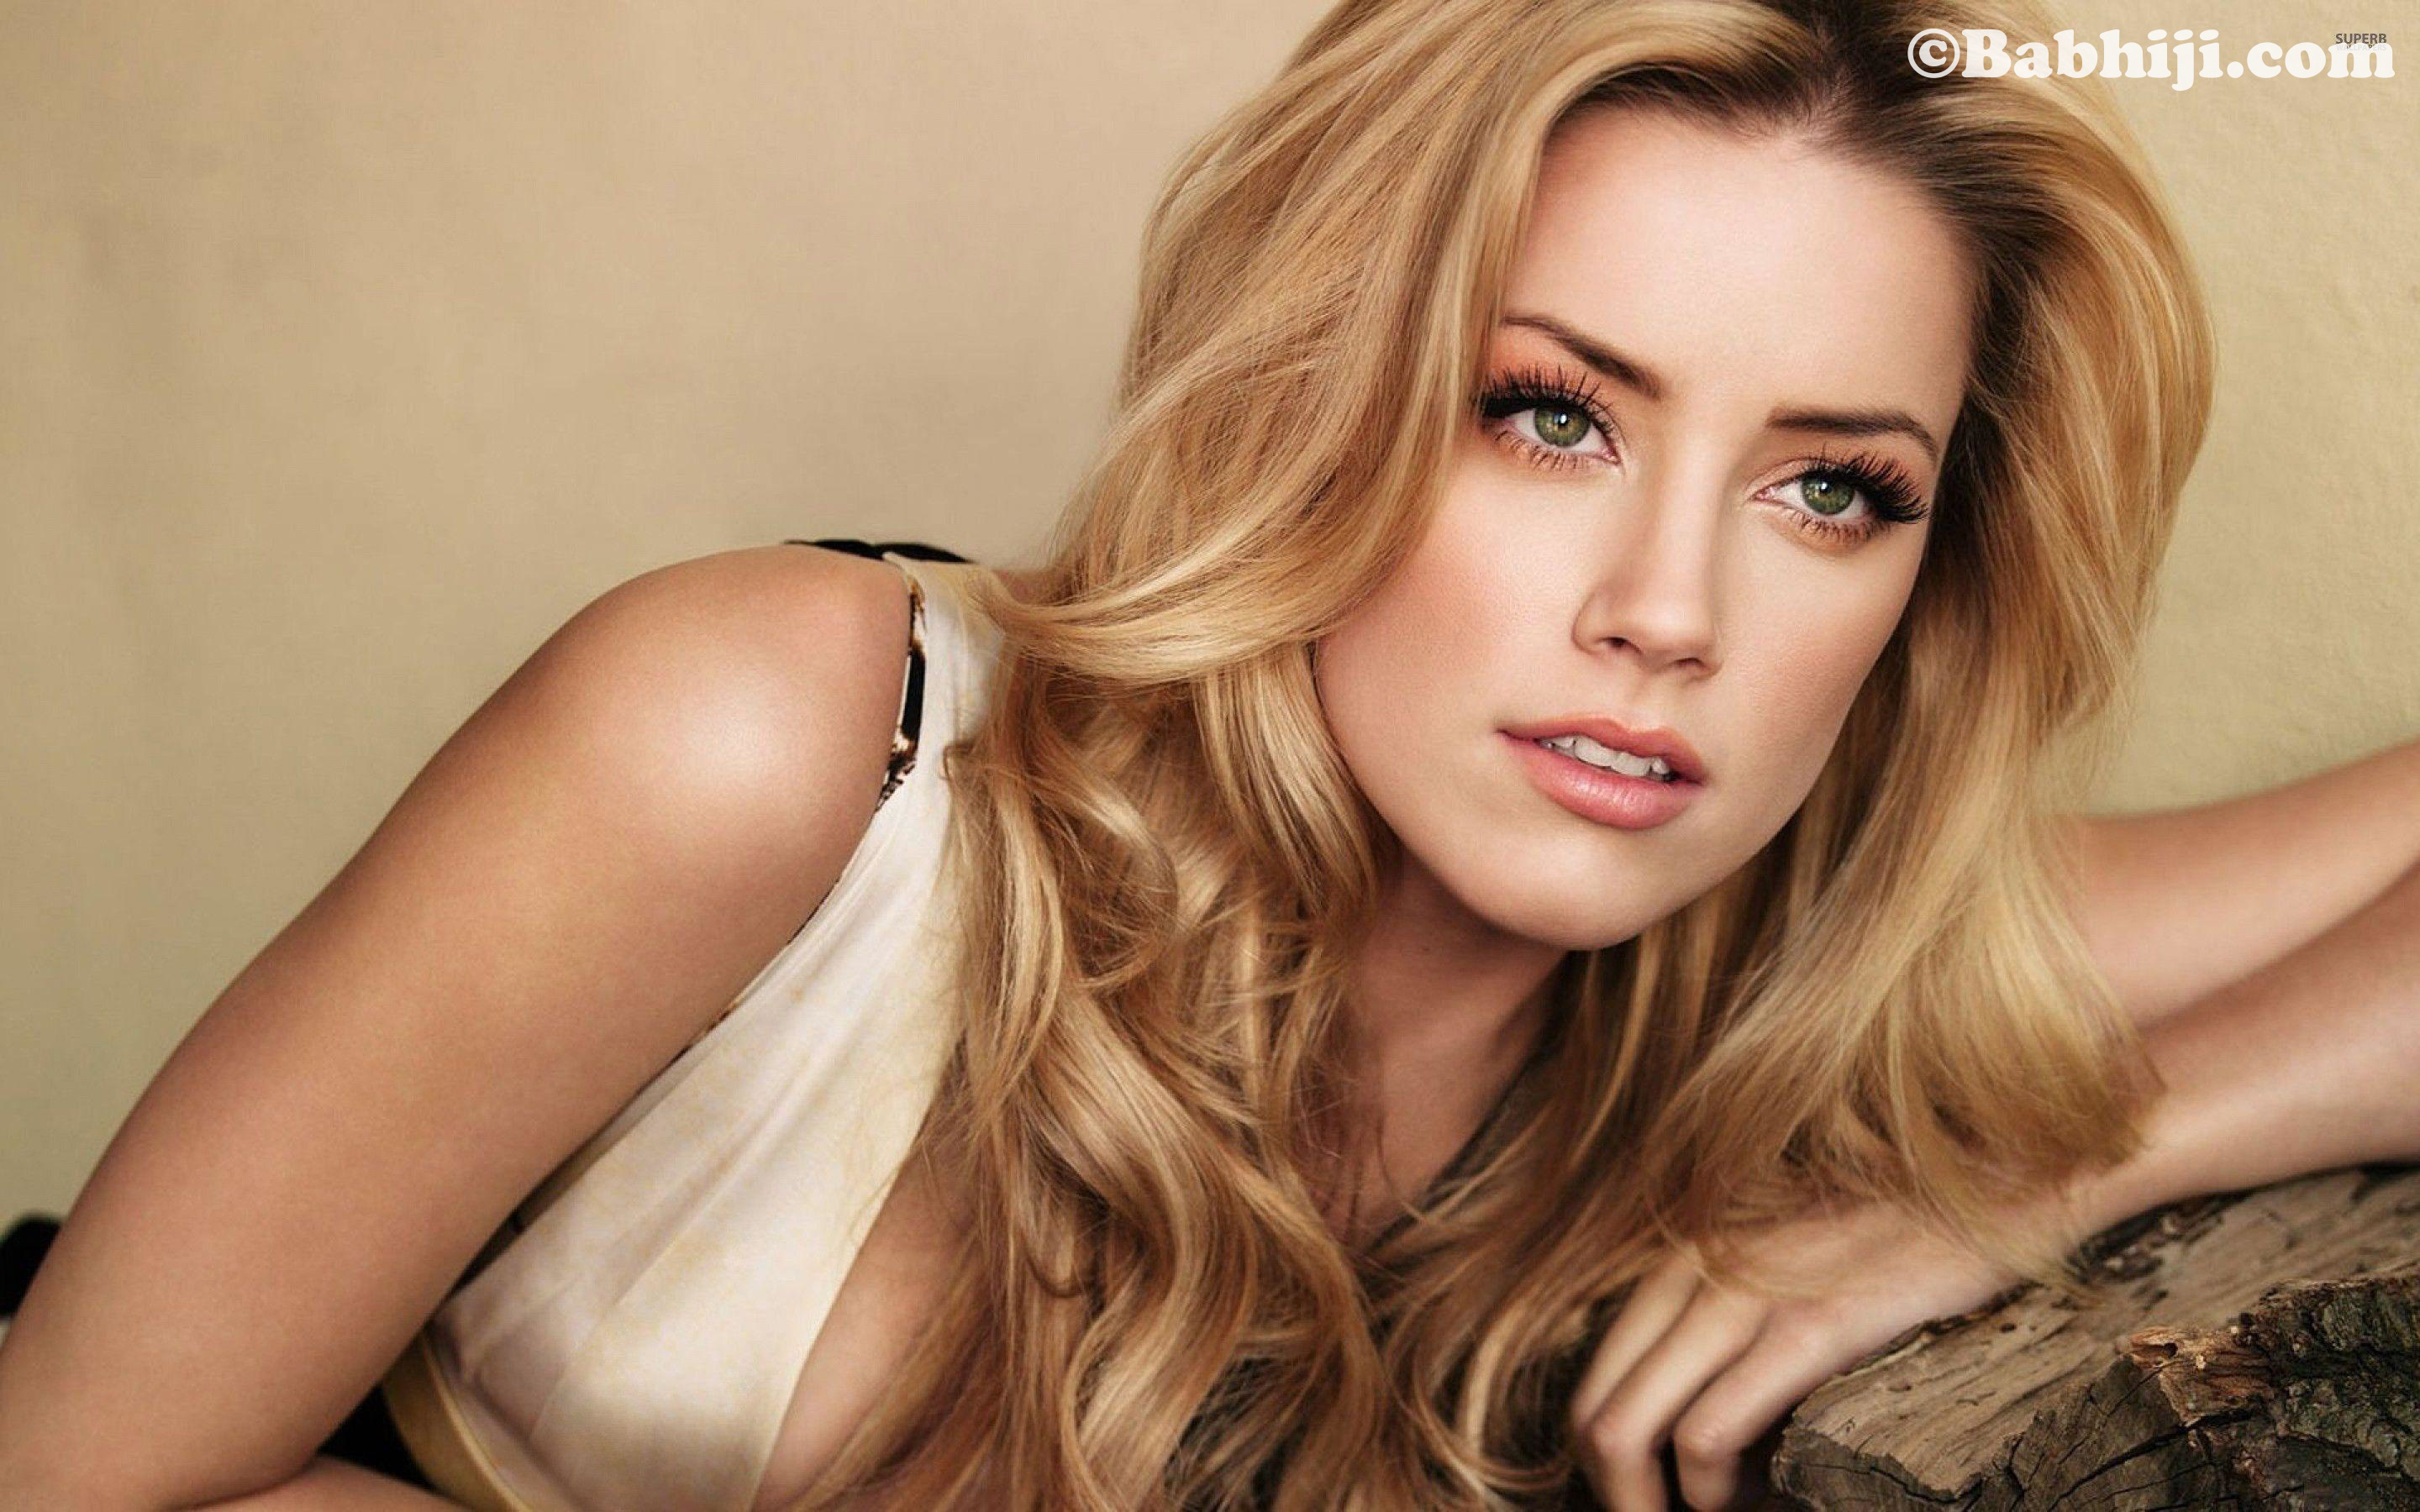 Amber Heard, Amber Heard Wallpaper, Amber Heard Photo, Amber Heard Images